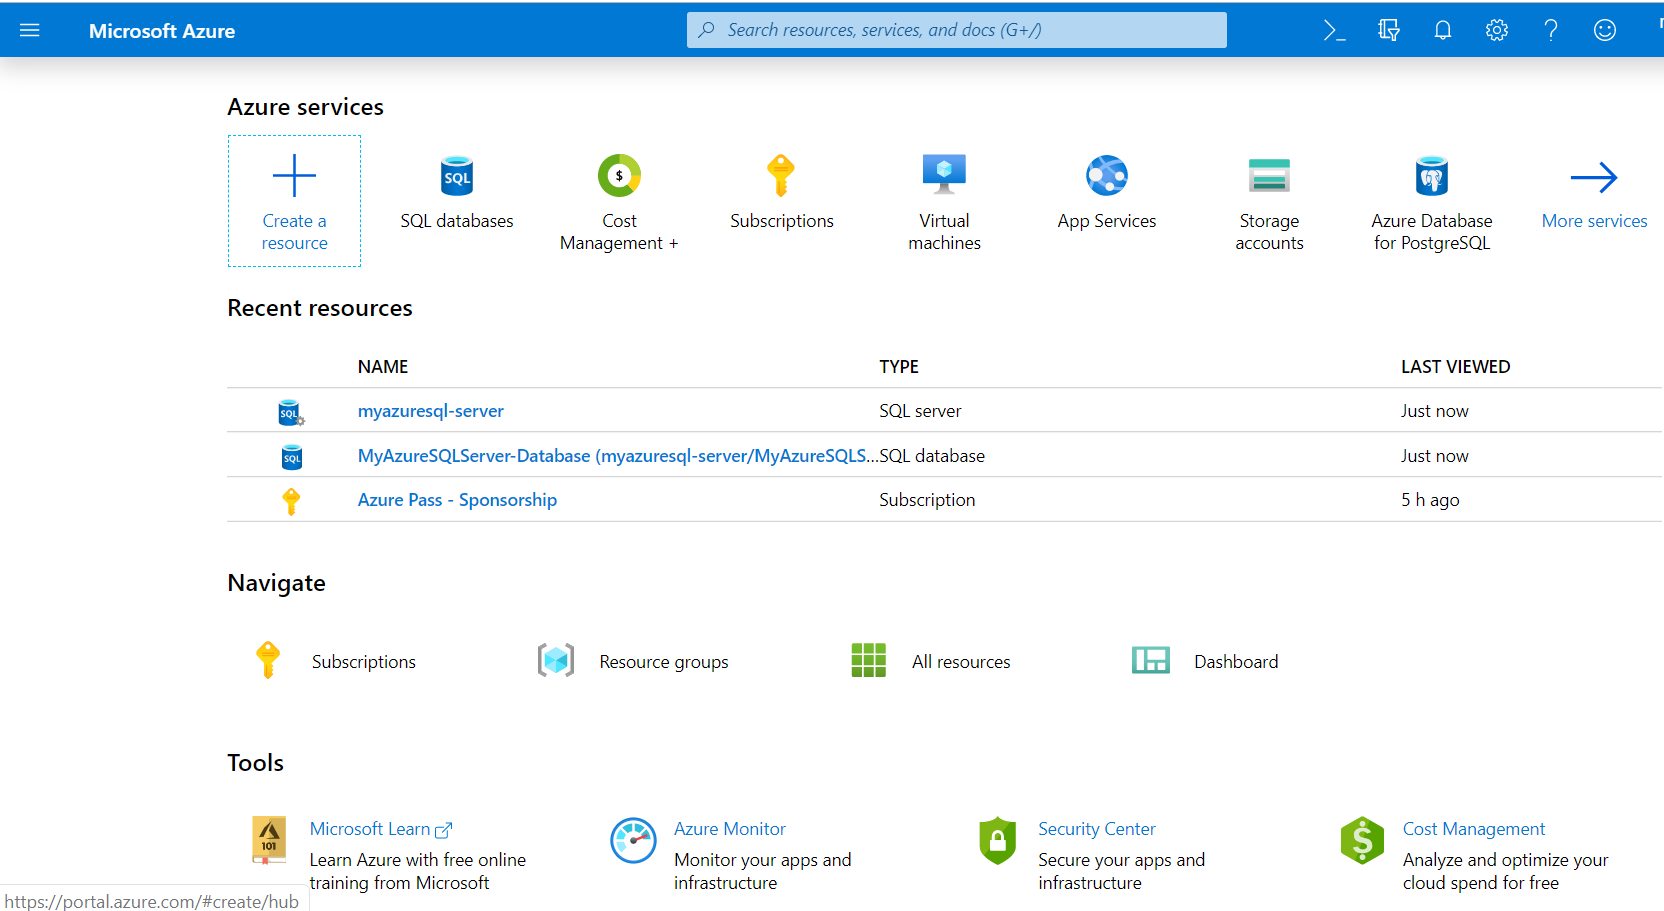 Latest Overview of Azure Portal